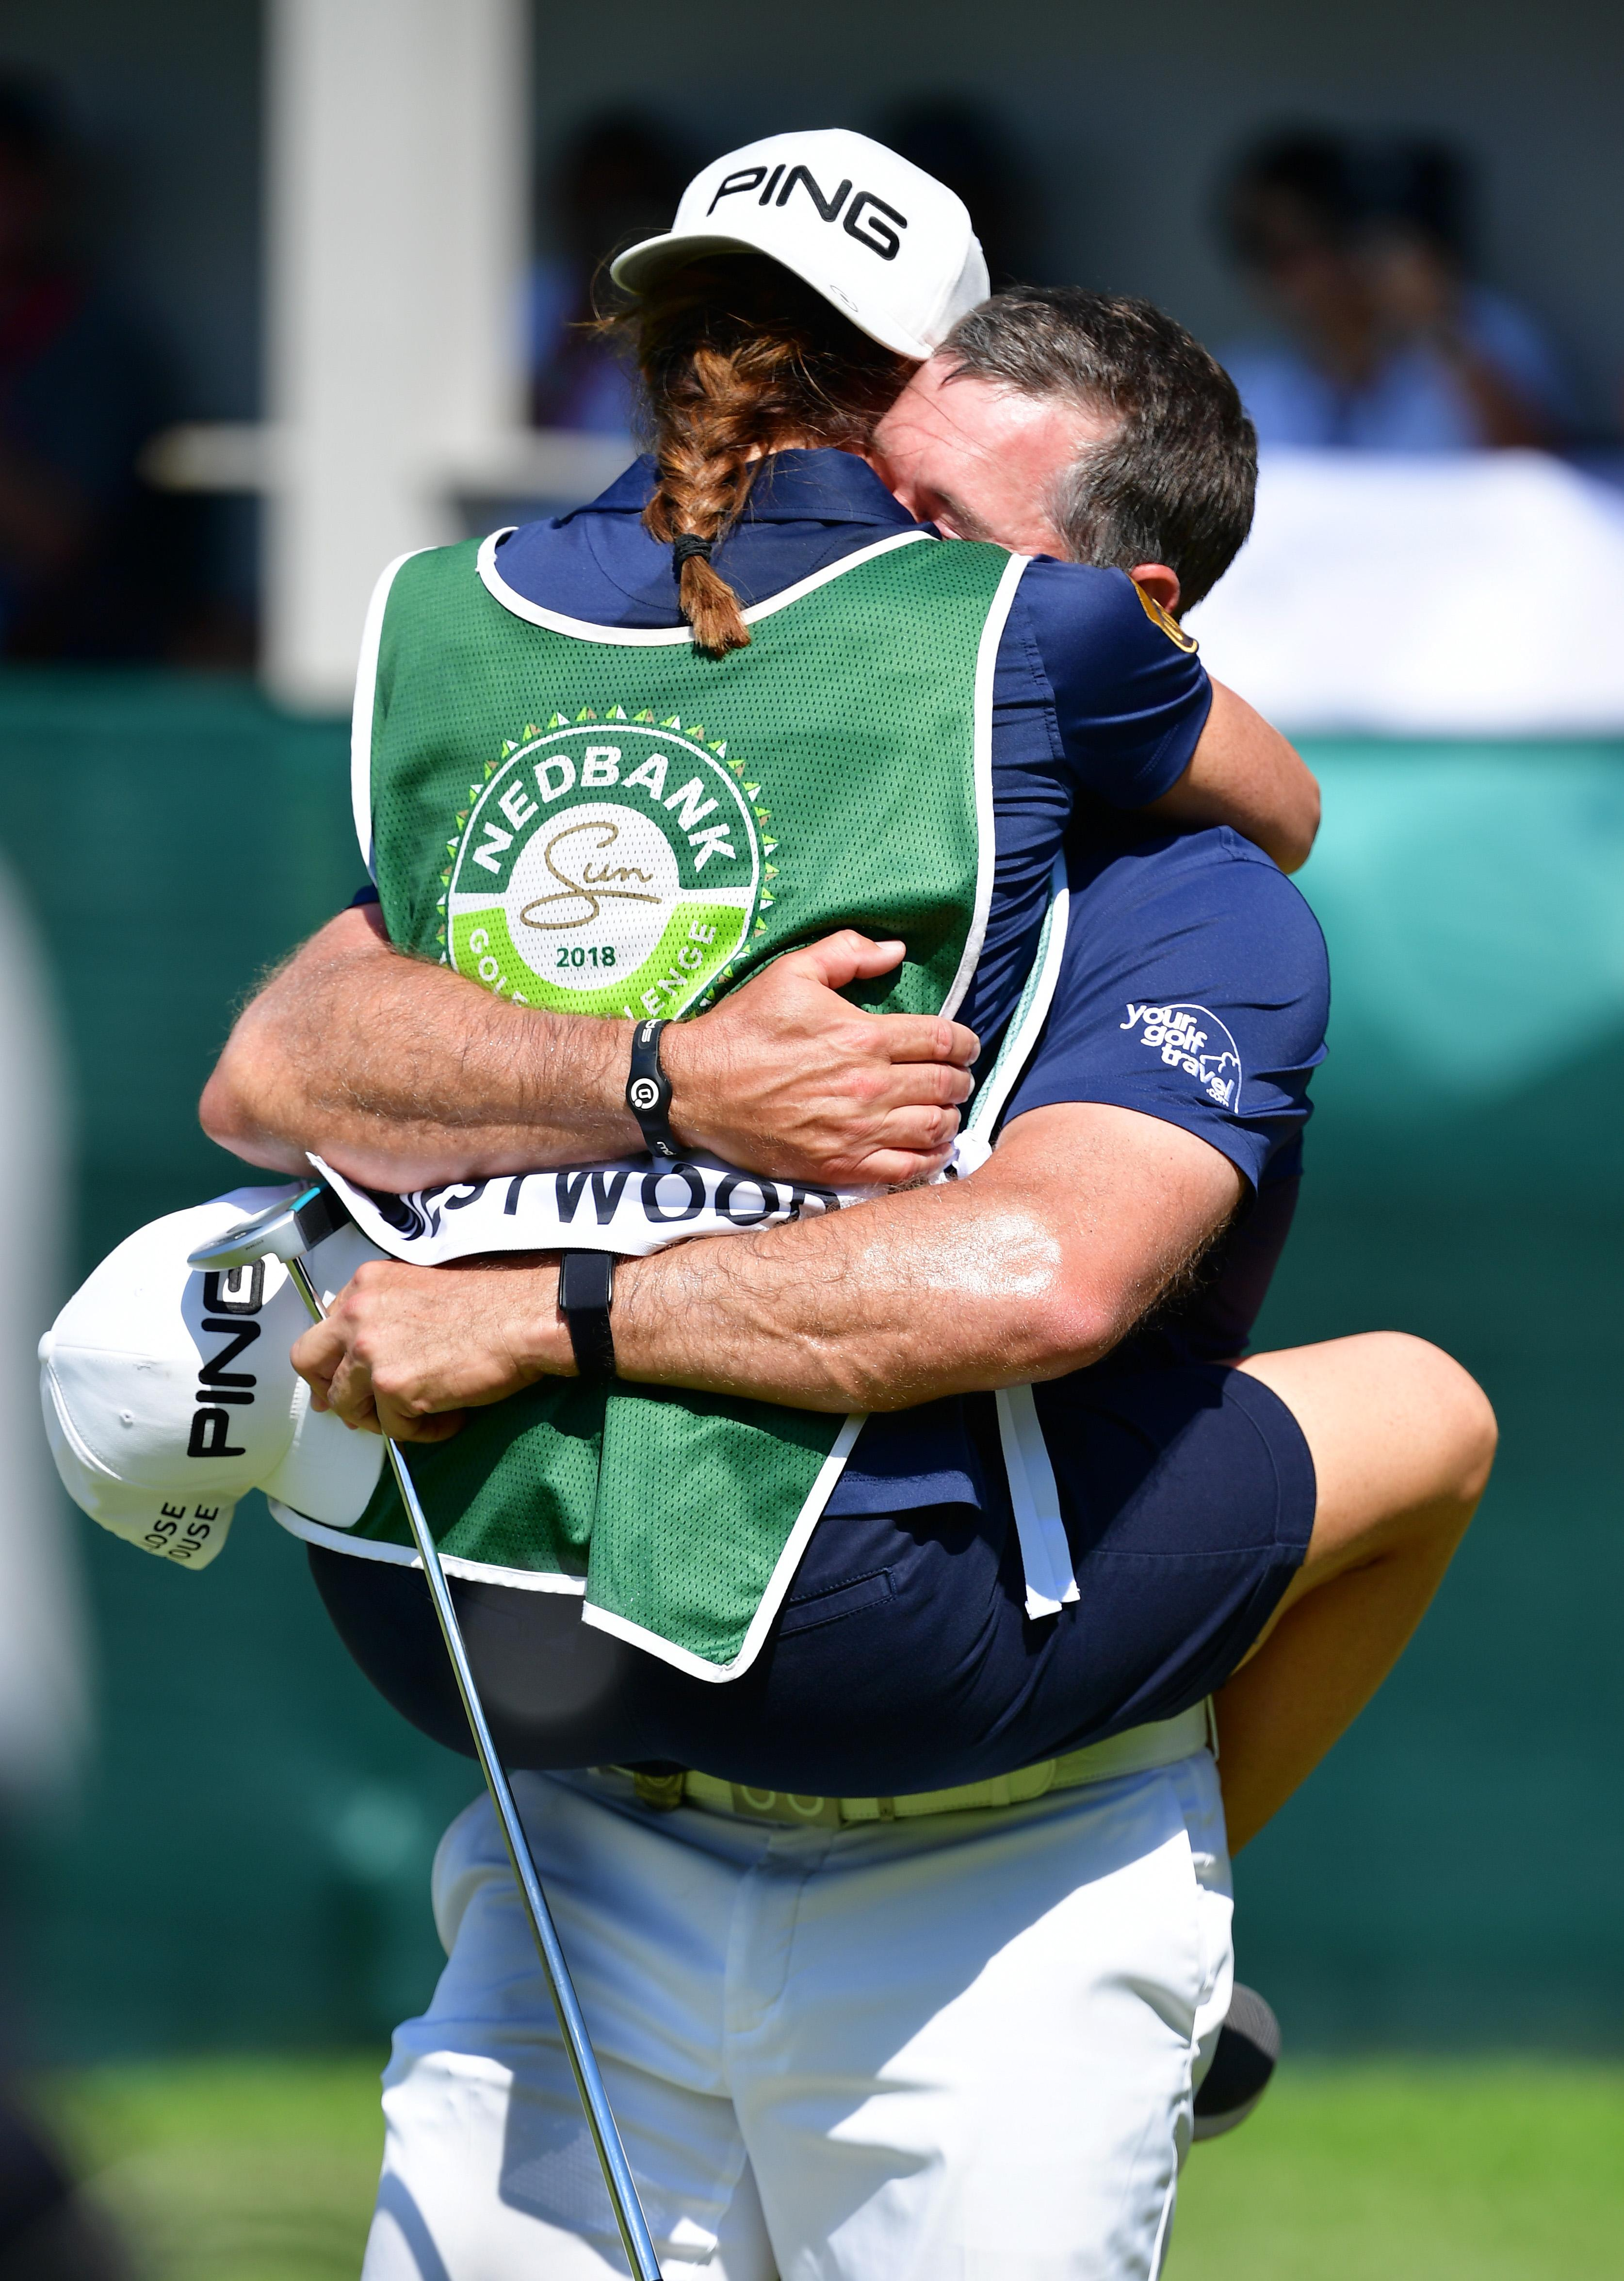 Lee Westwood celebrated his win today as girlfriend Helen Storey jumped on him